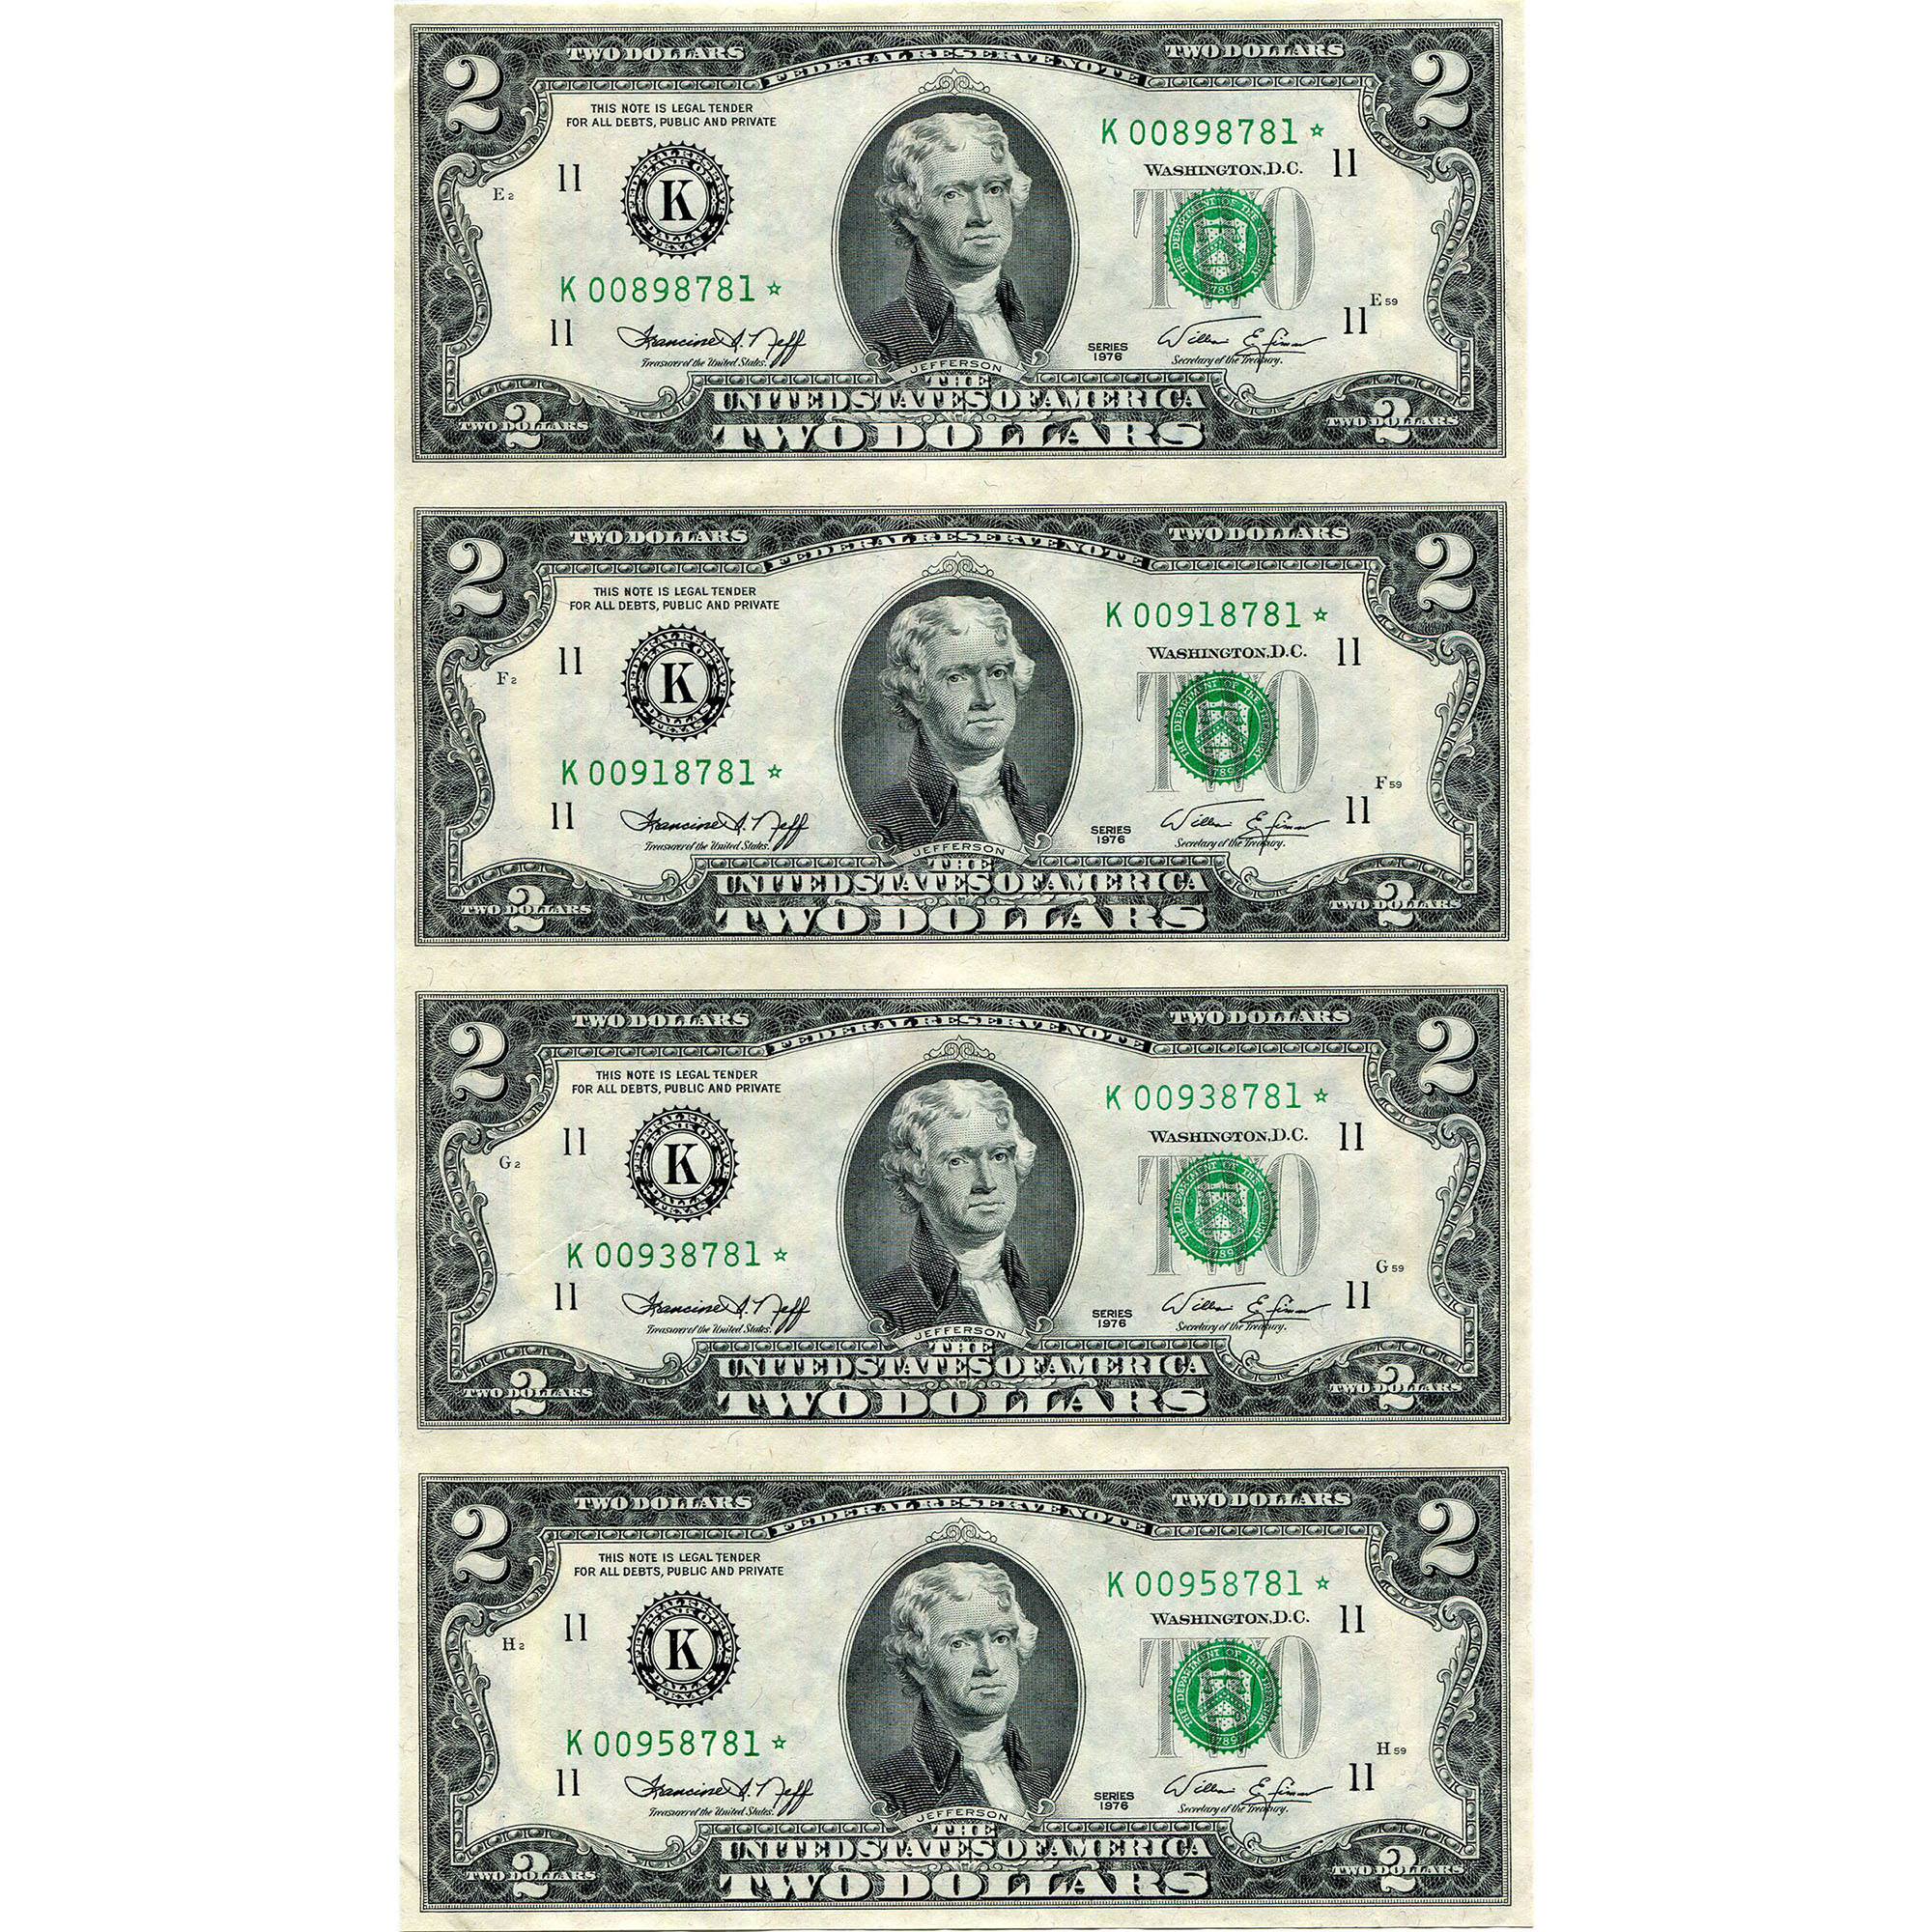 4x currency